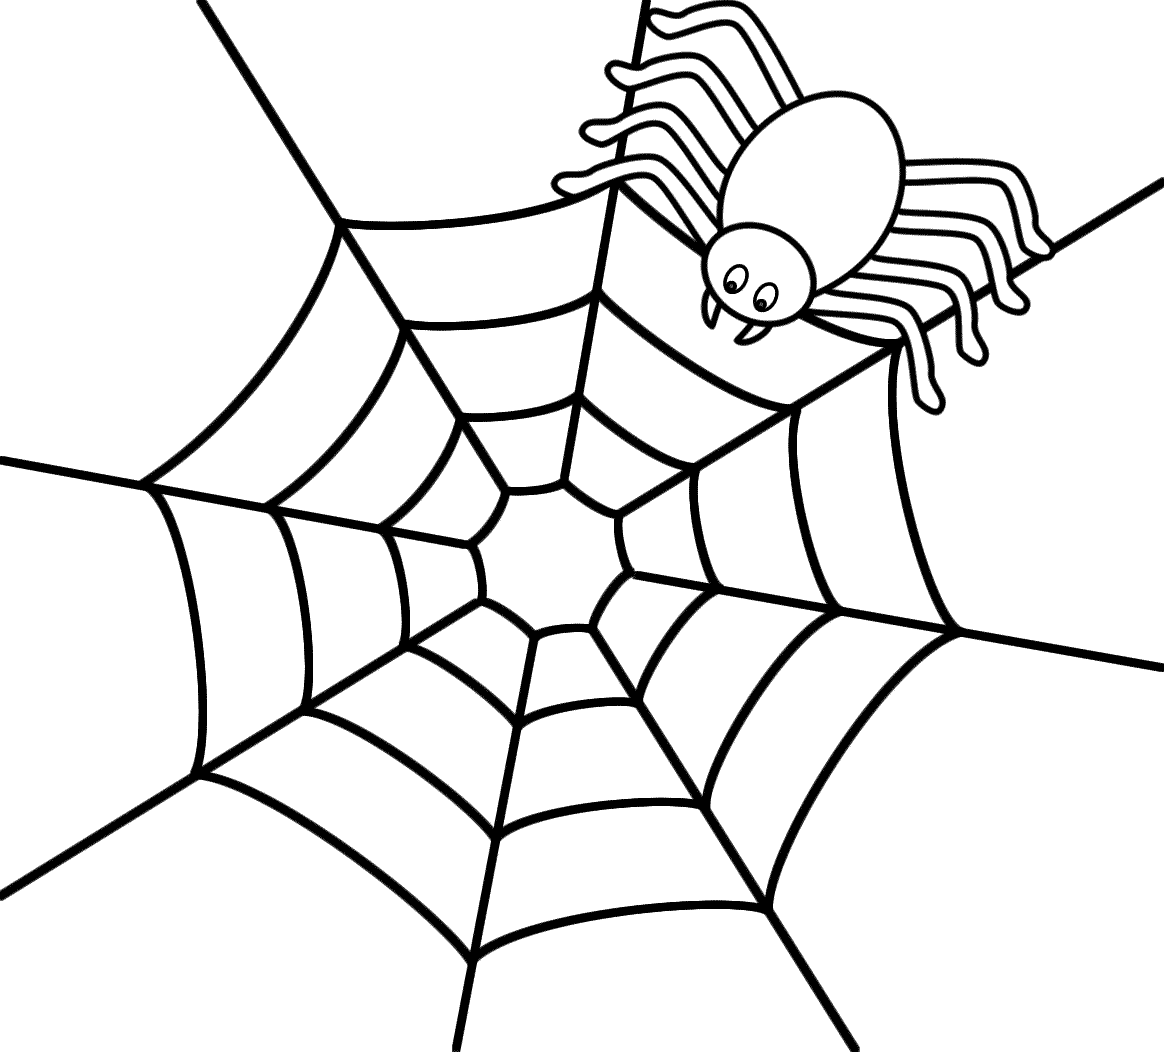 Spider_Web_Coloring_Pages_For_Kids_01